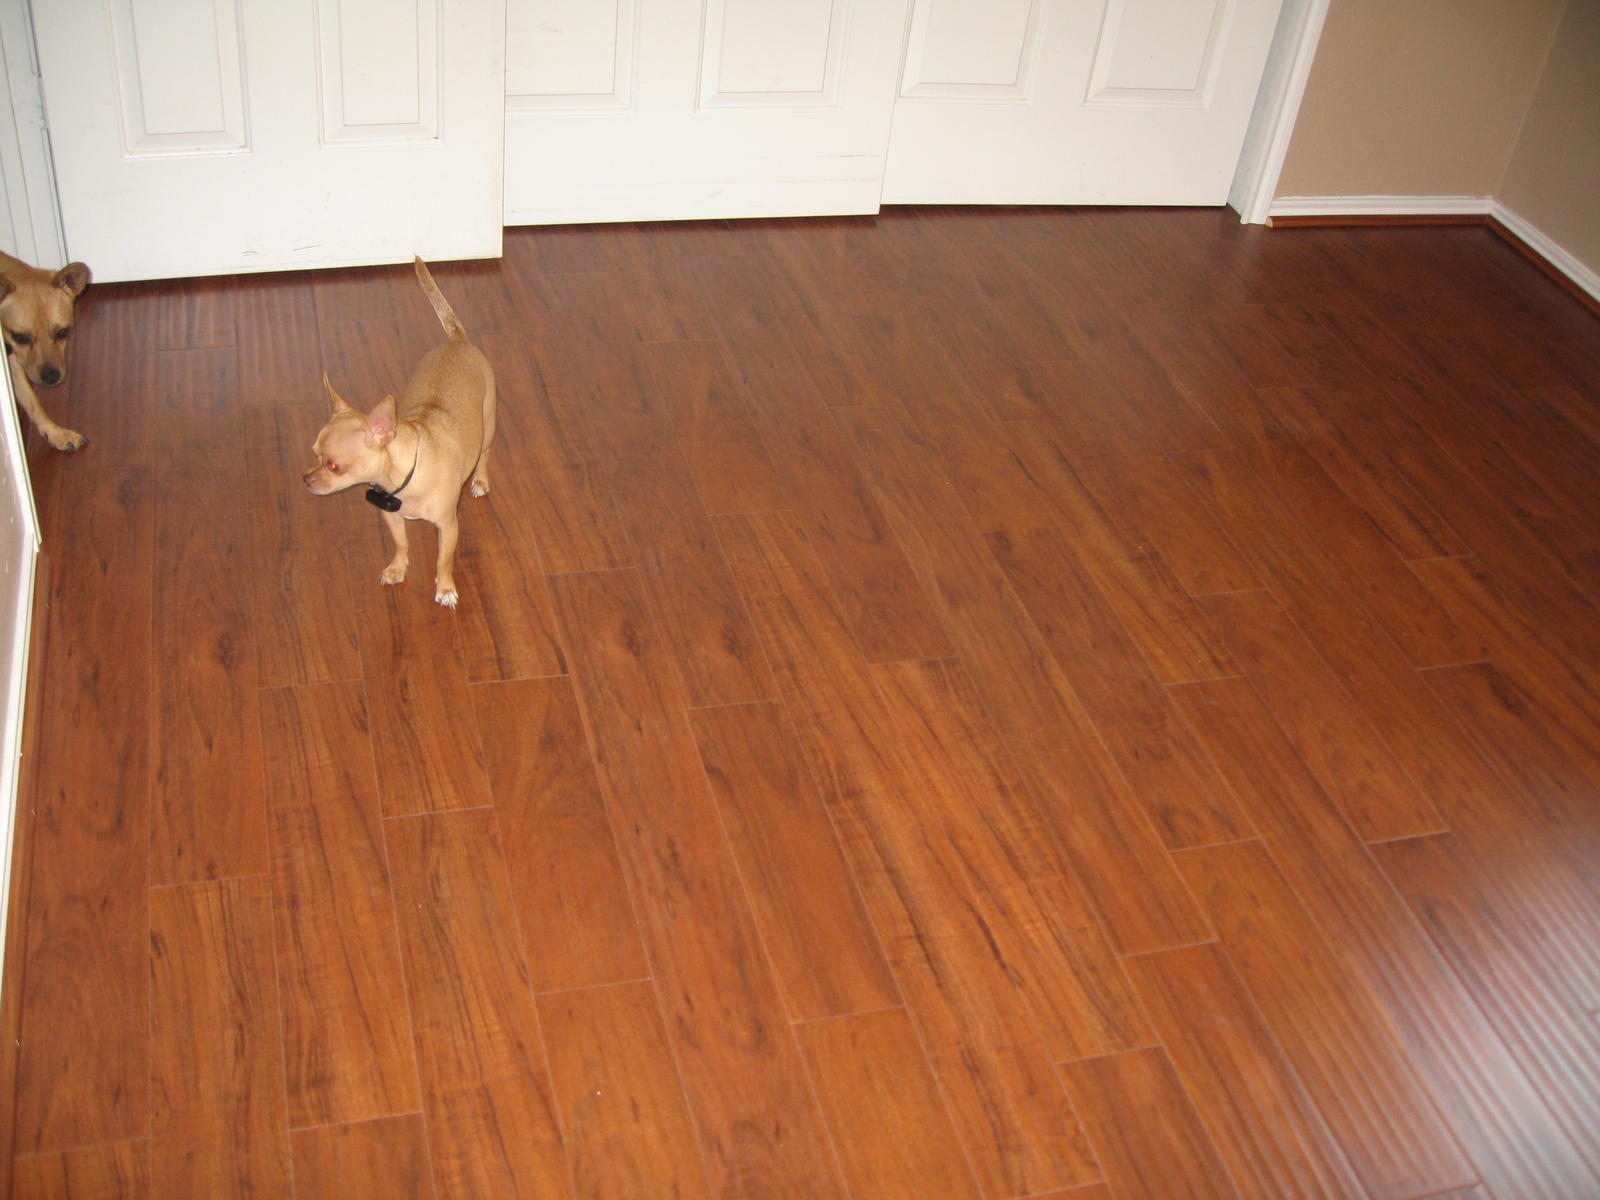 Laminate flooring best layout laminate flooring for Hard laminate flooring